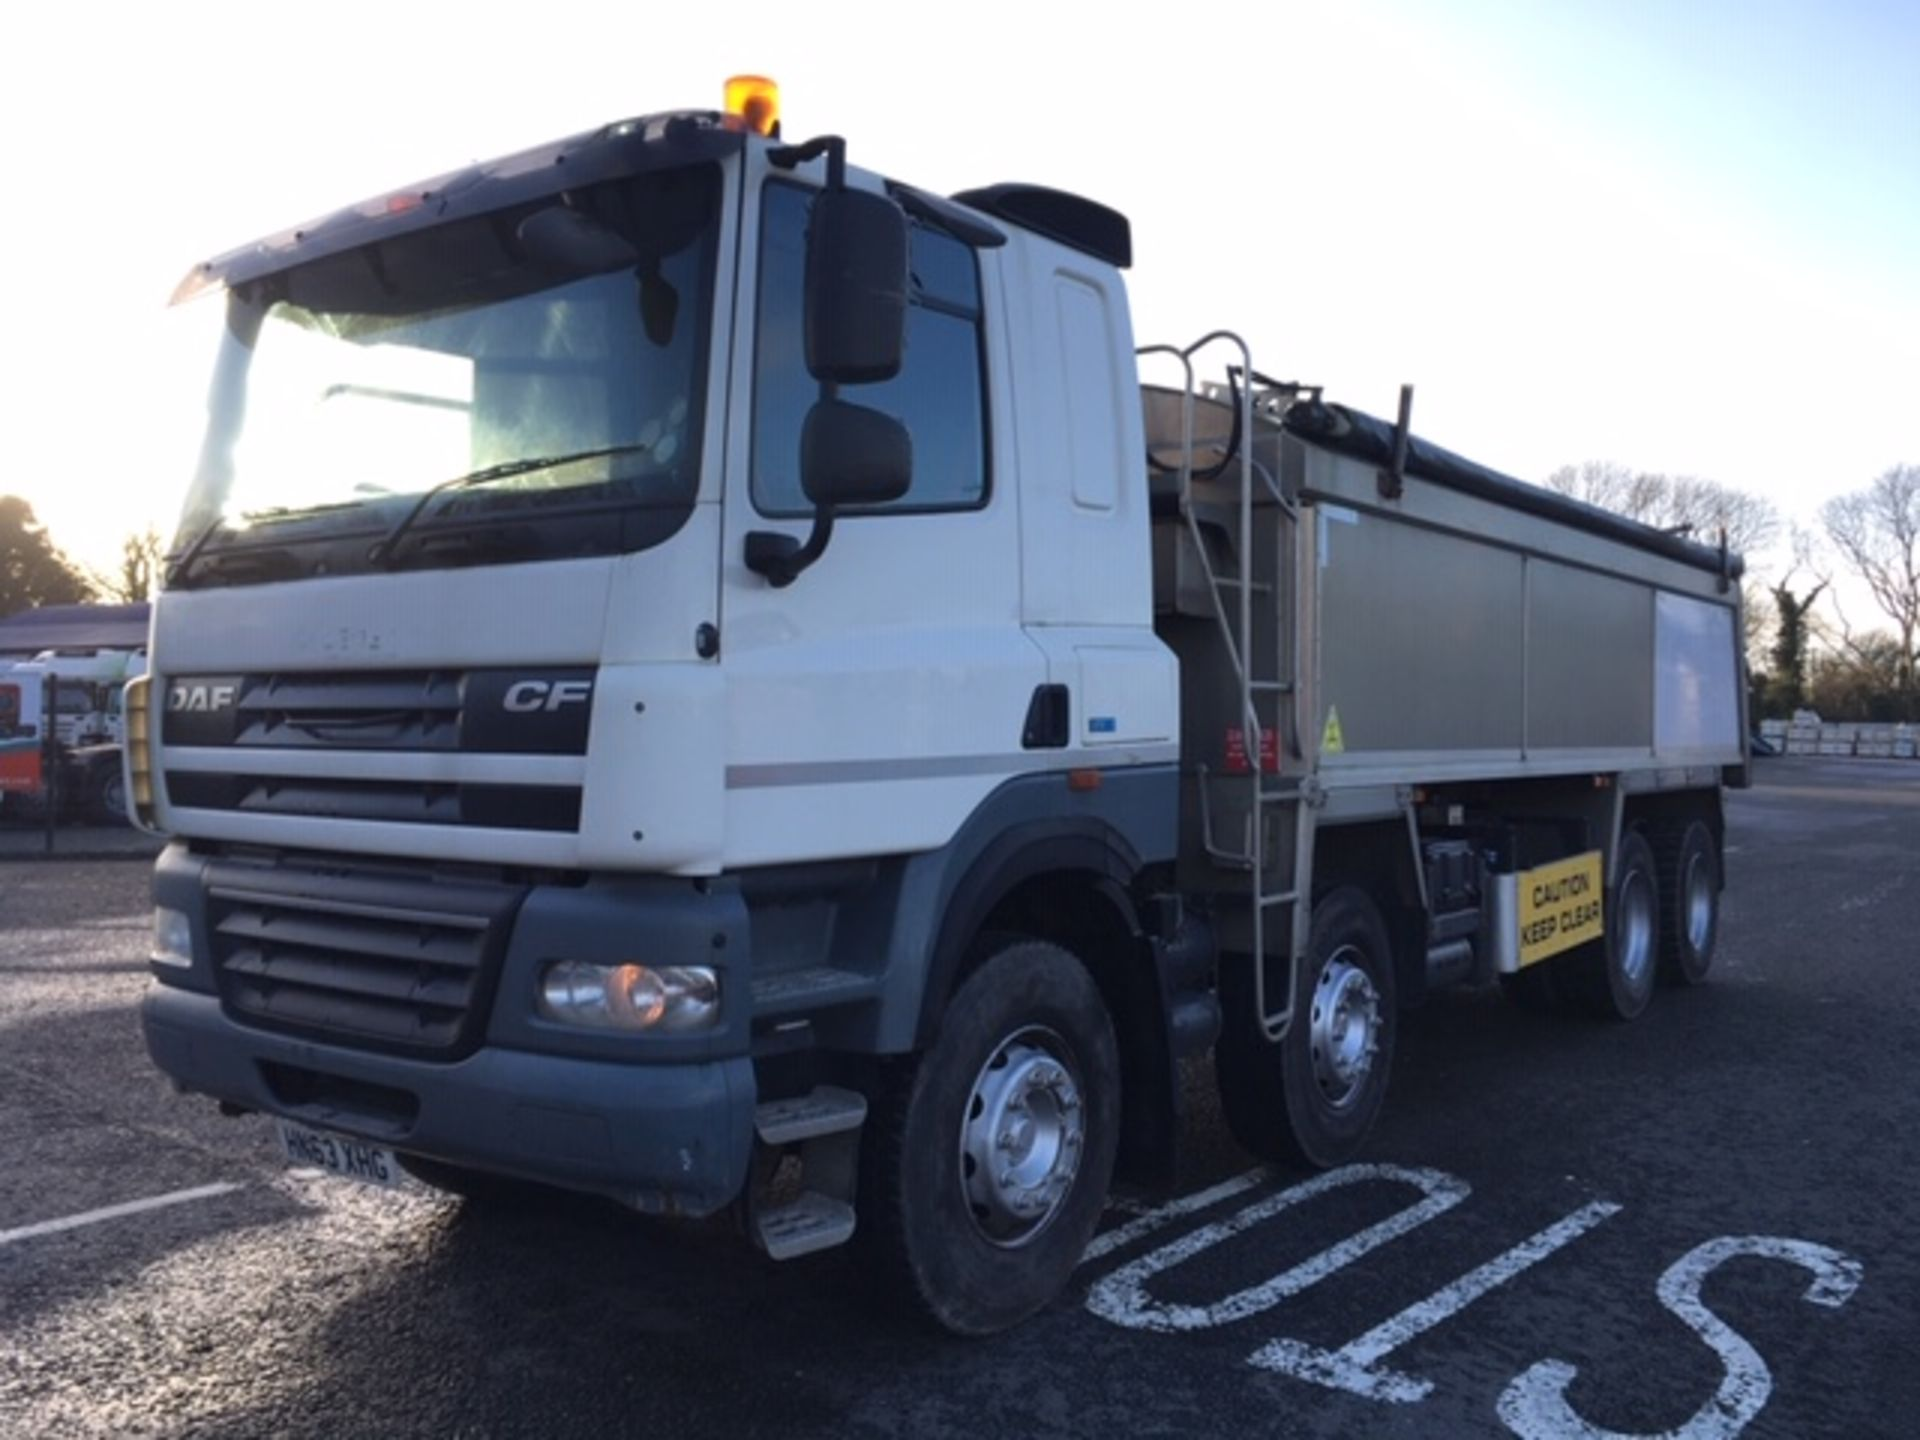 Lot 59 - 2013 (63) DAF CF85-410 SLEEPERCAB 8X4 TIPPER WITH PPG INSULATED TAR SPEC BODY